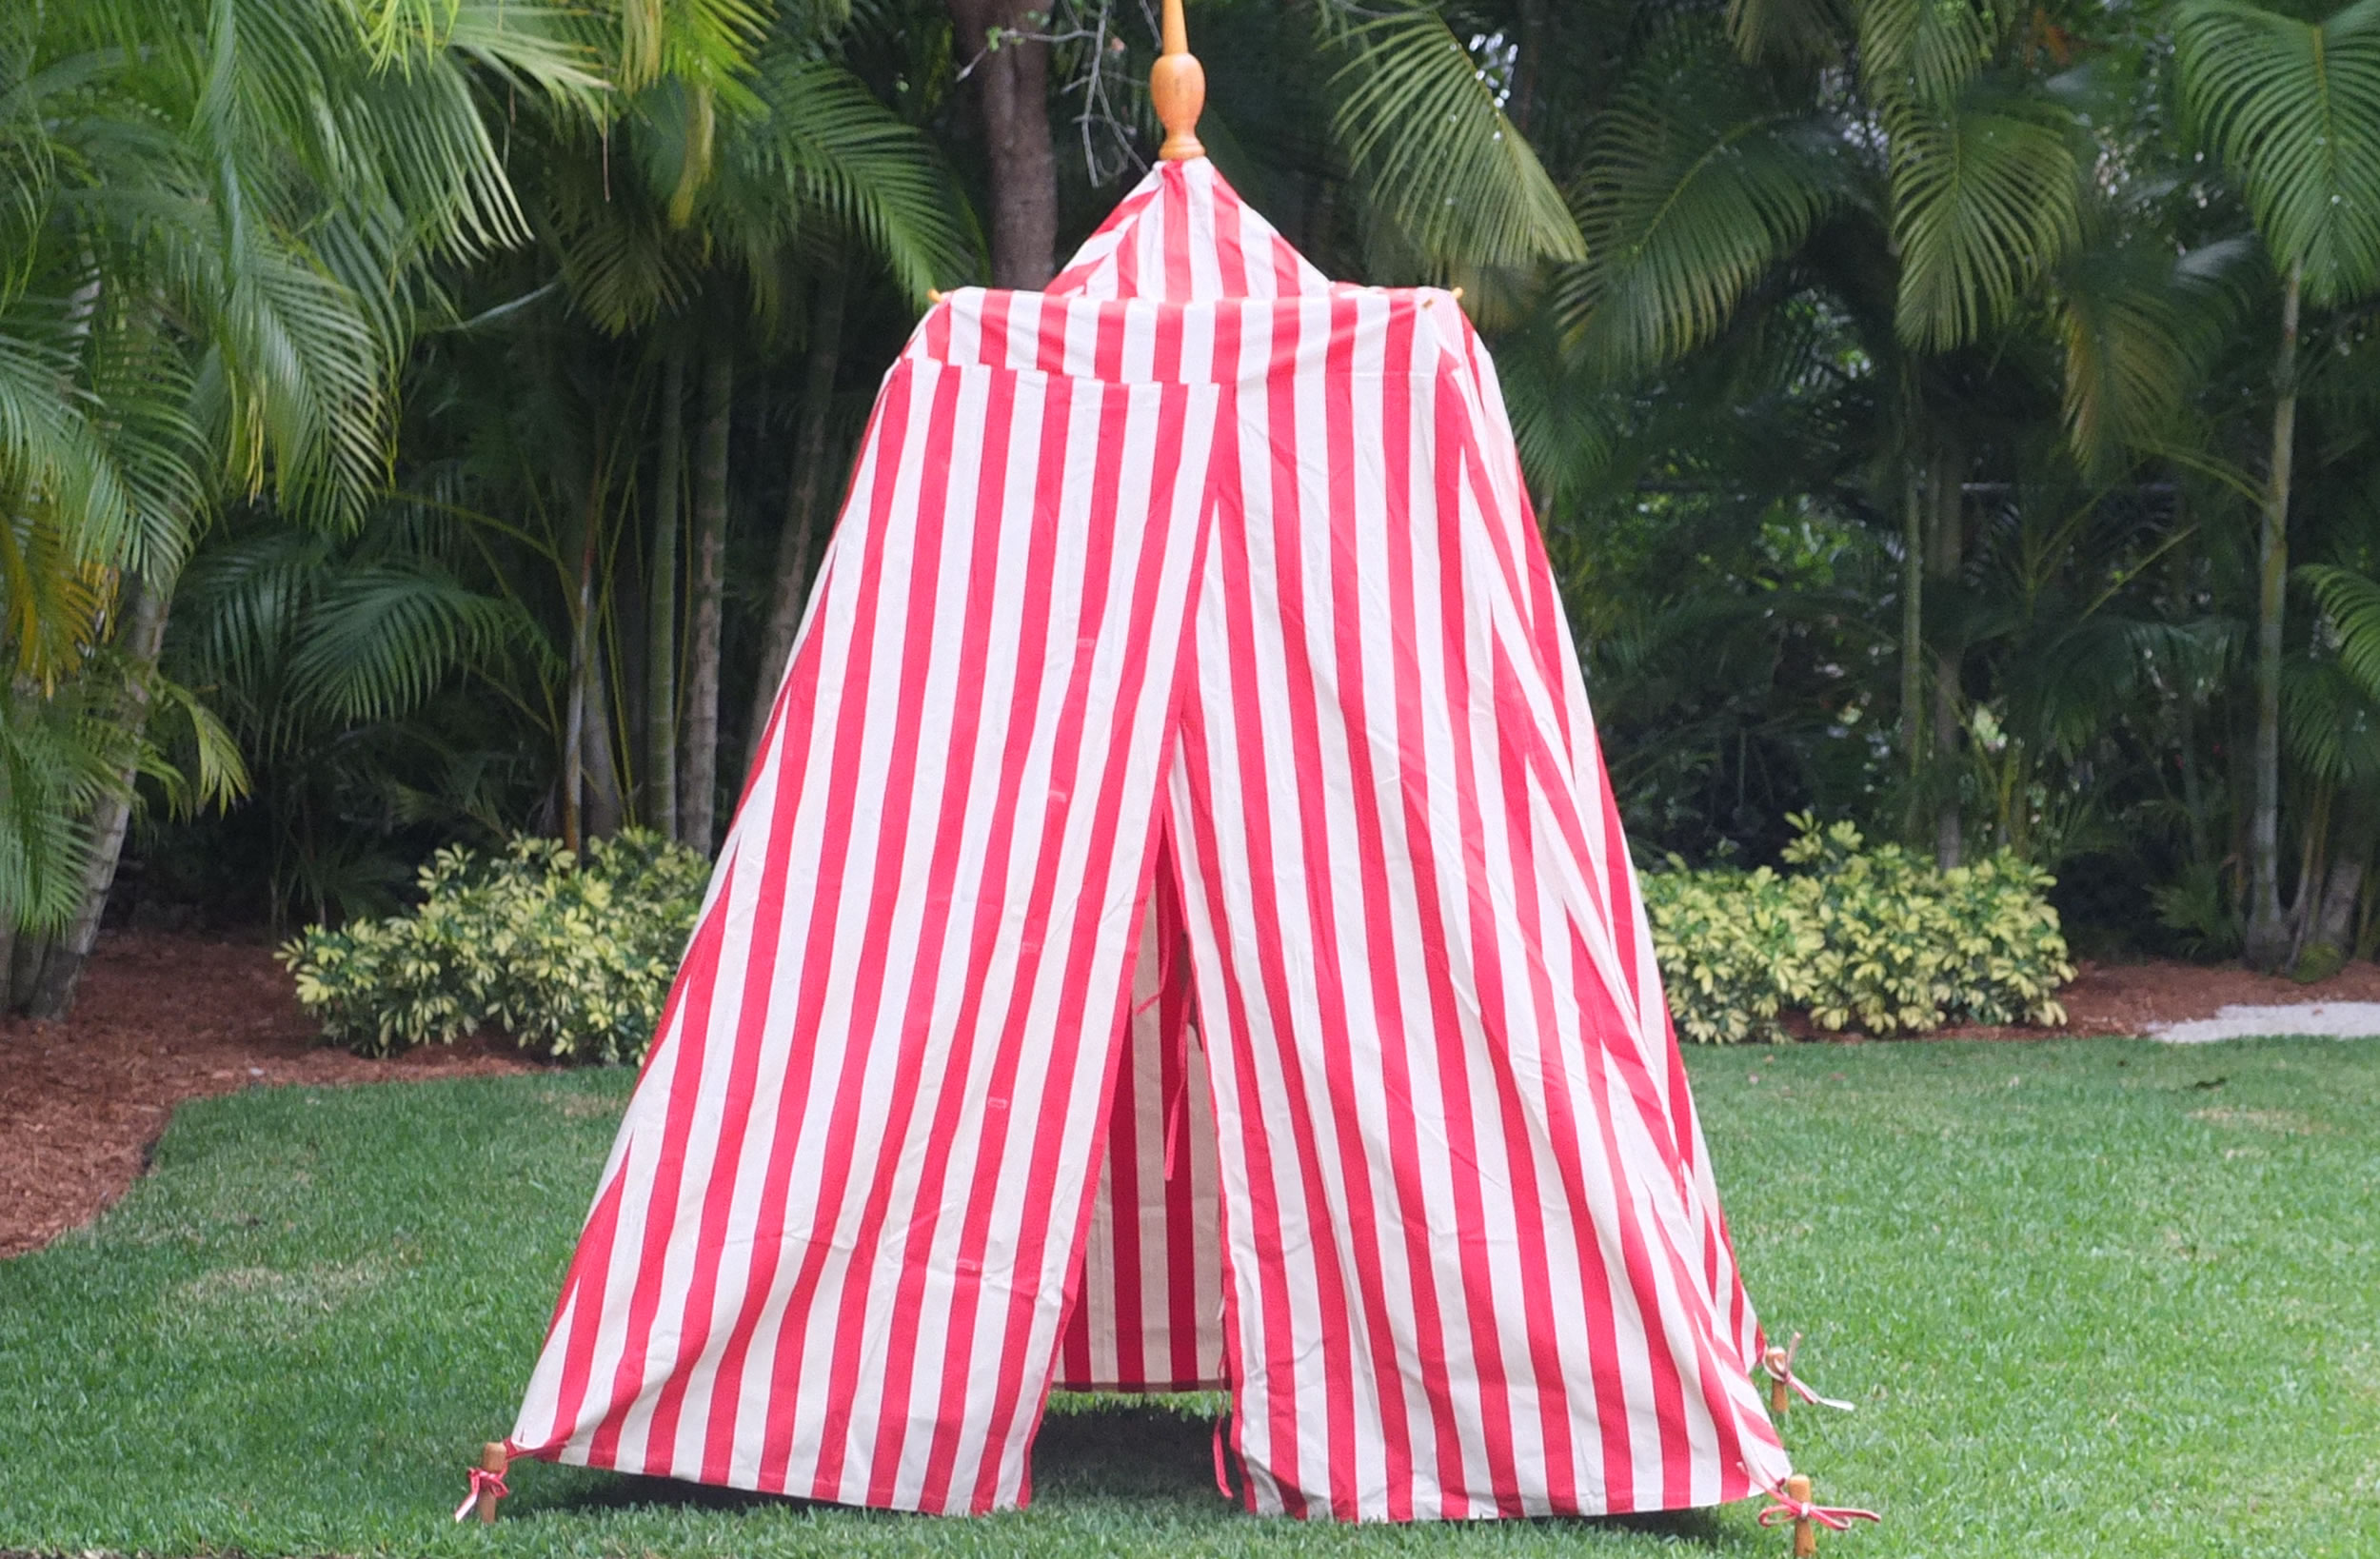 Red Striped Beach Tents | Empire Bathing Tents in Red and White Stripes